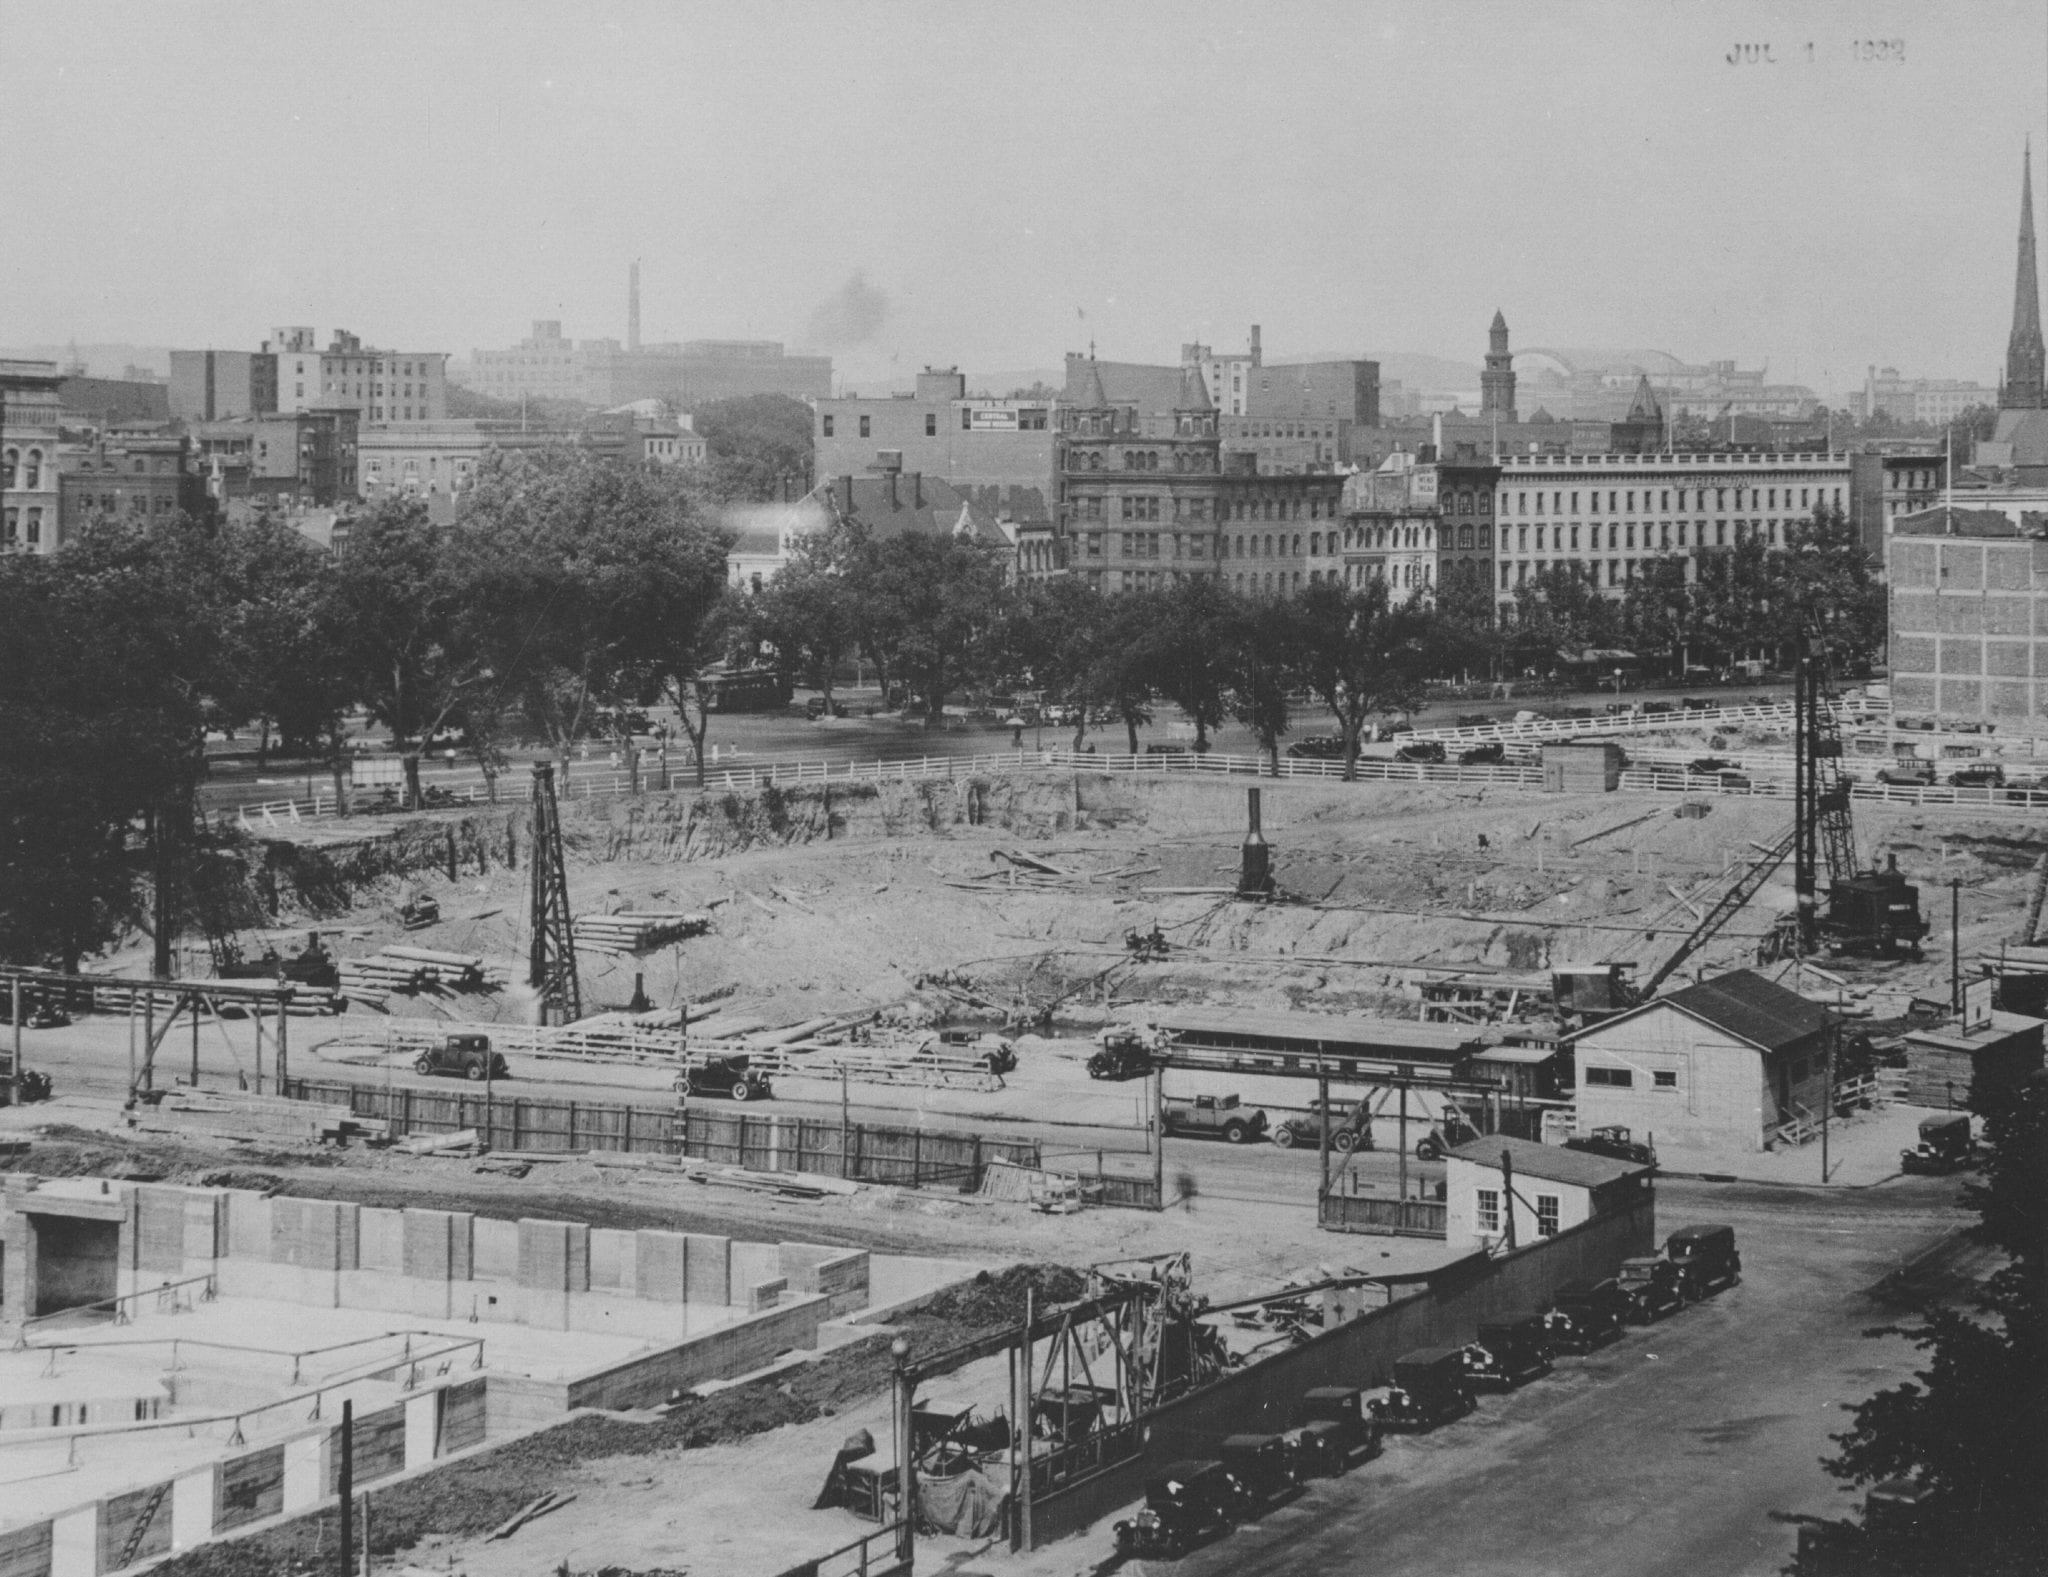 View of National Archive Site Construction in 1932